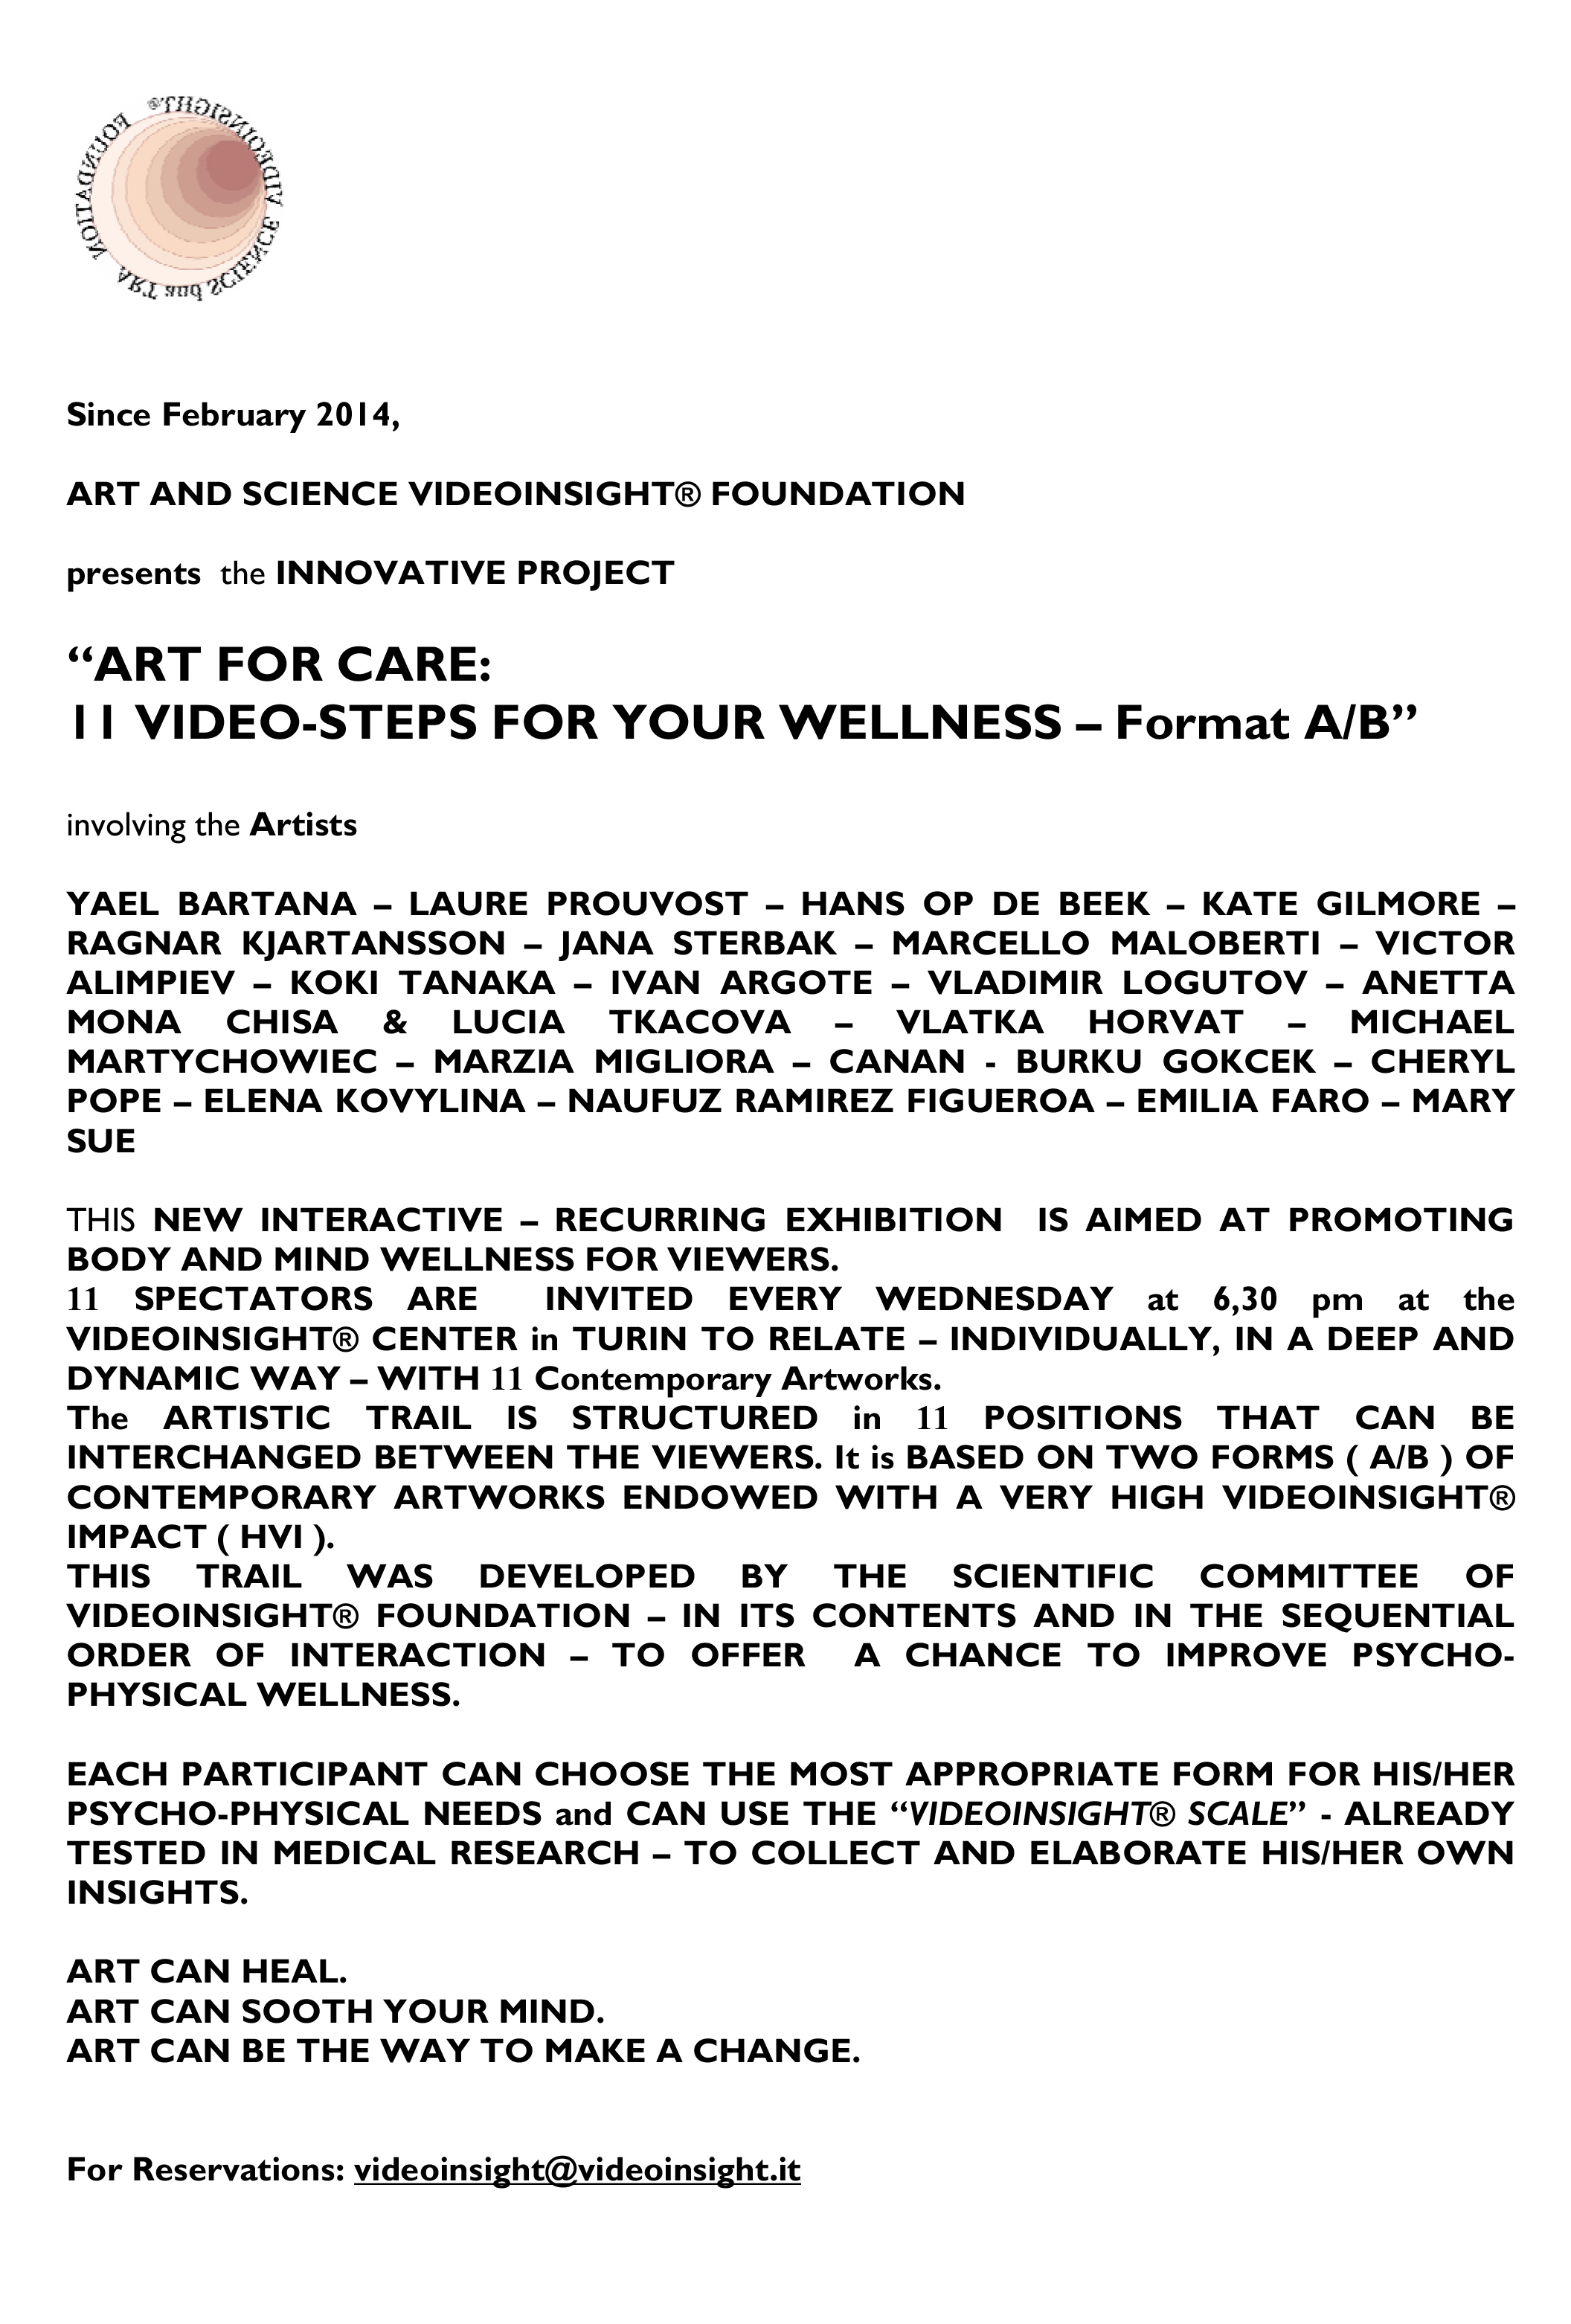 Art for Care